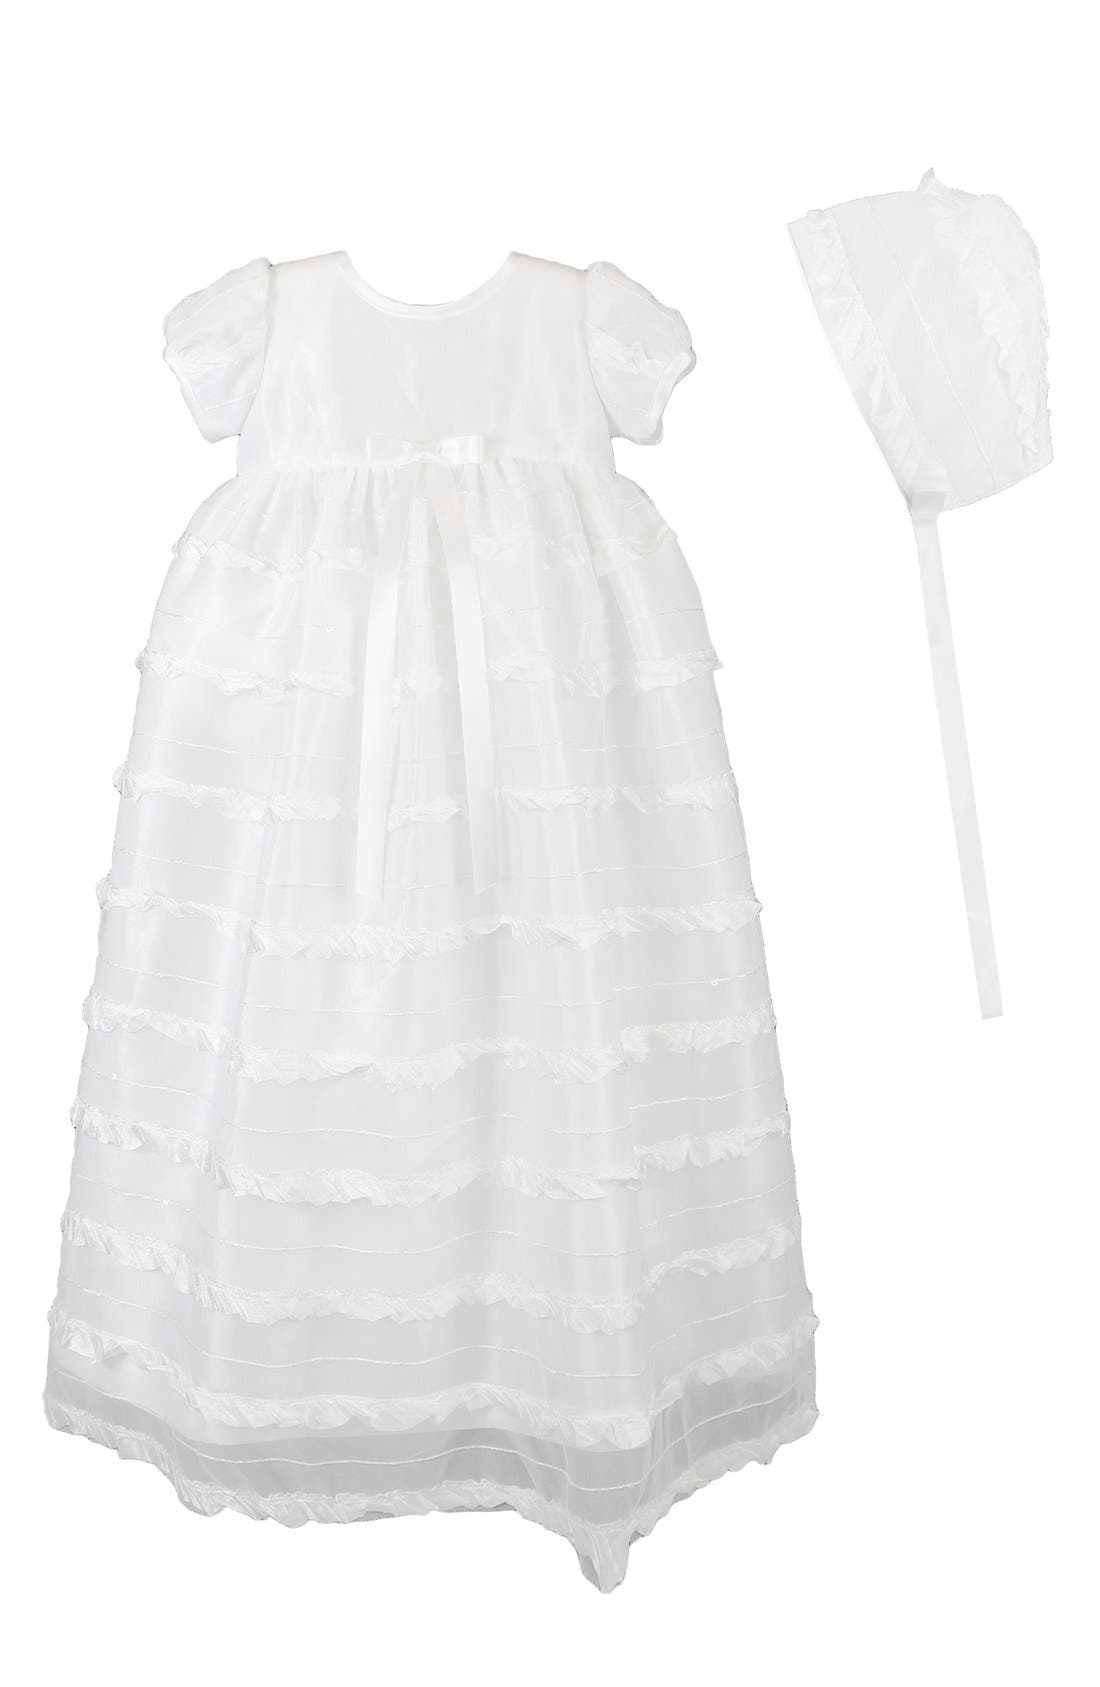 C.I. Castro & Co 'Eyelash' Christening Gown & Bonnet (Baby Girls)